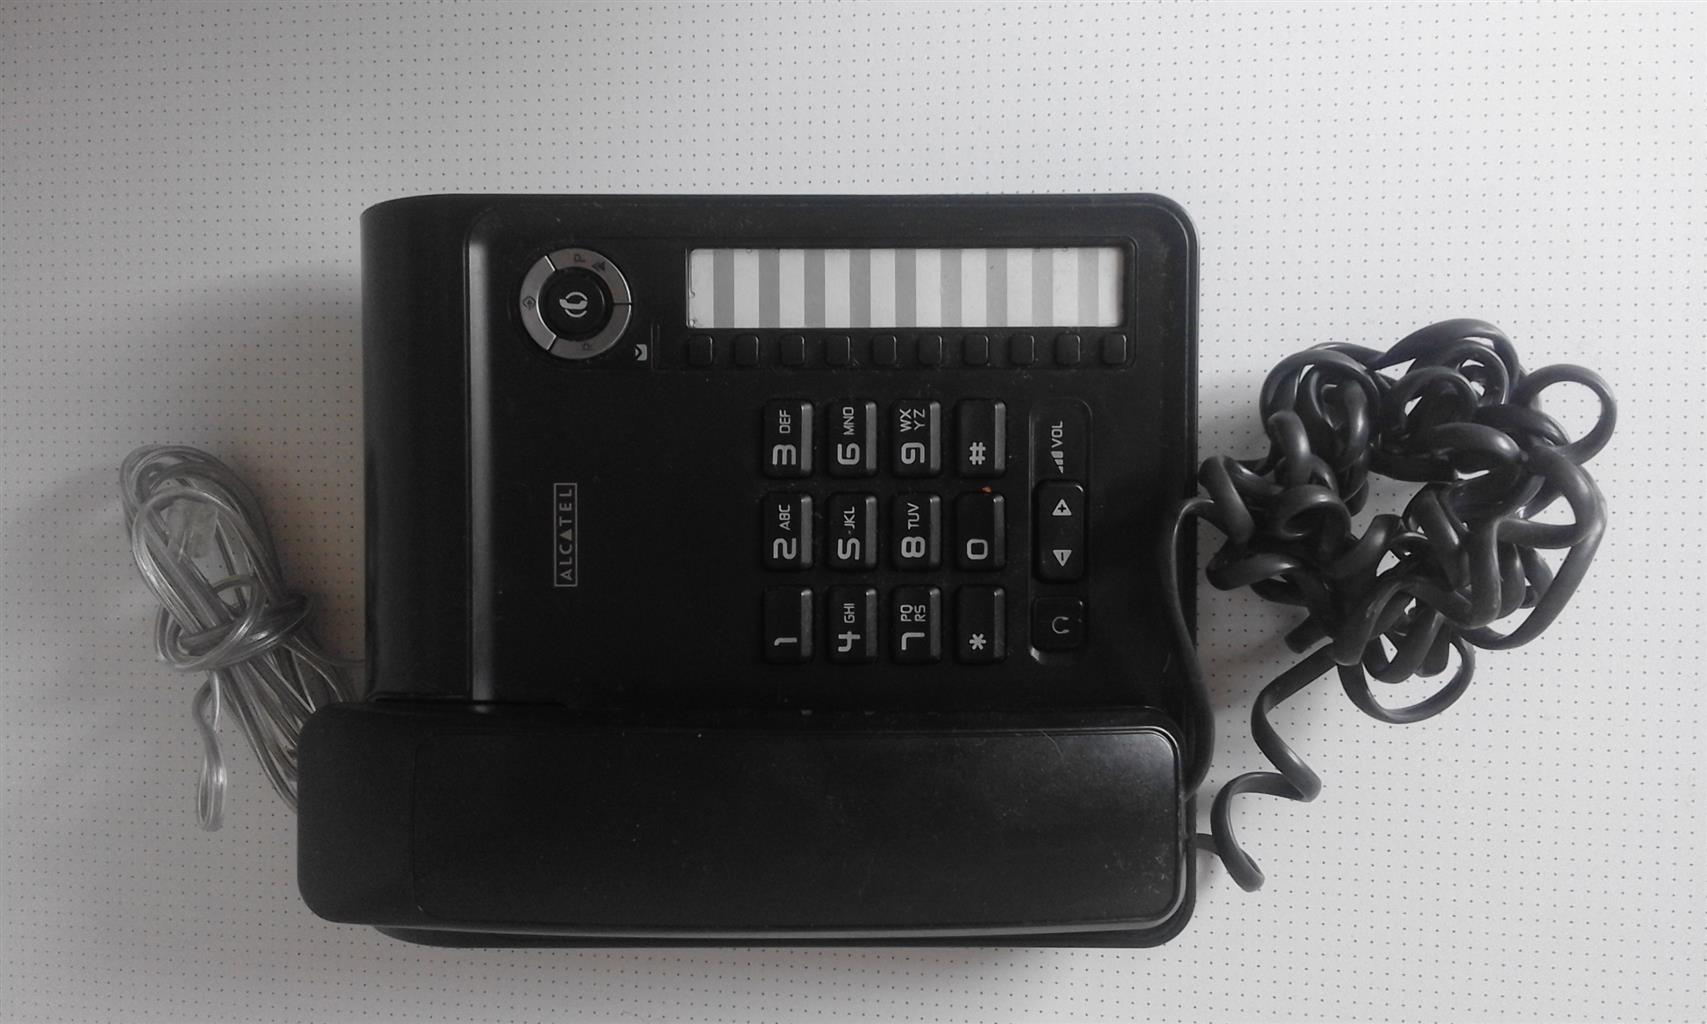 Fixed Line Phones Many to choose from.